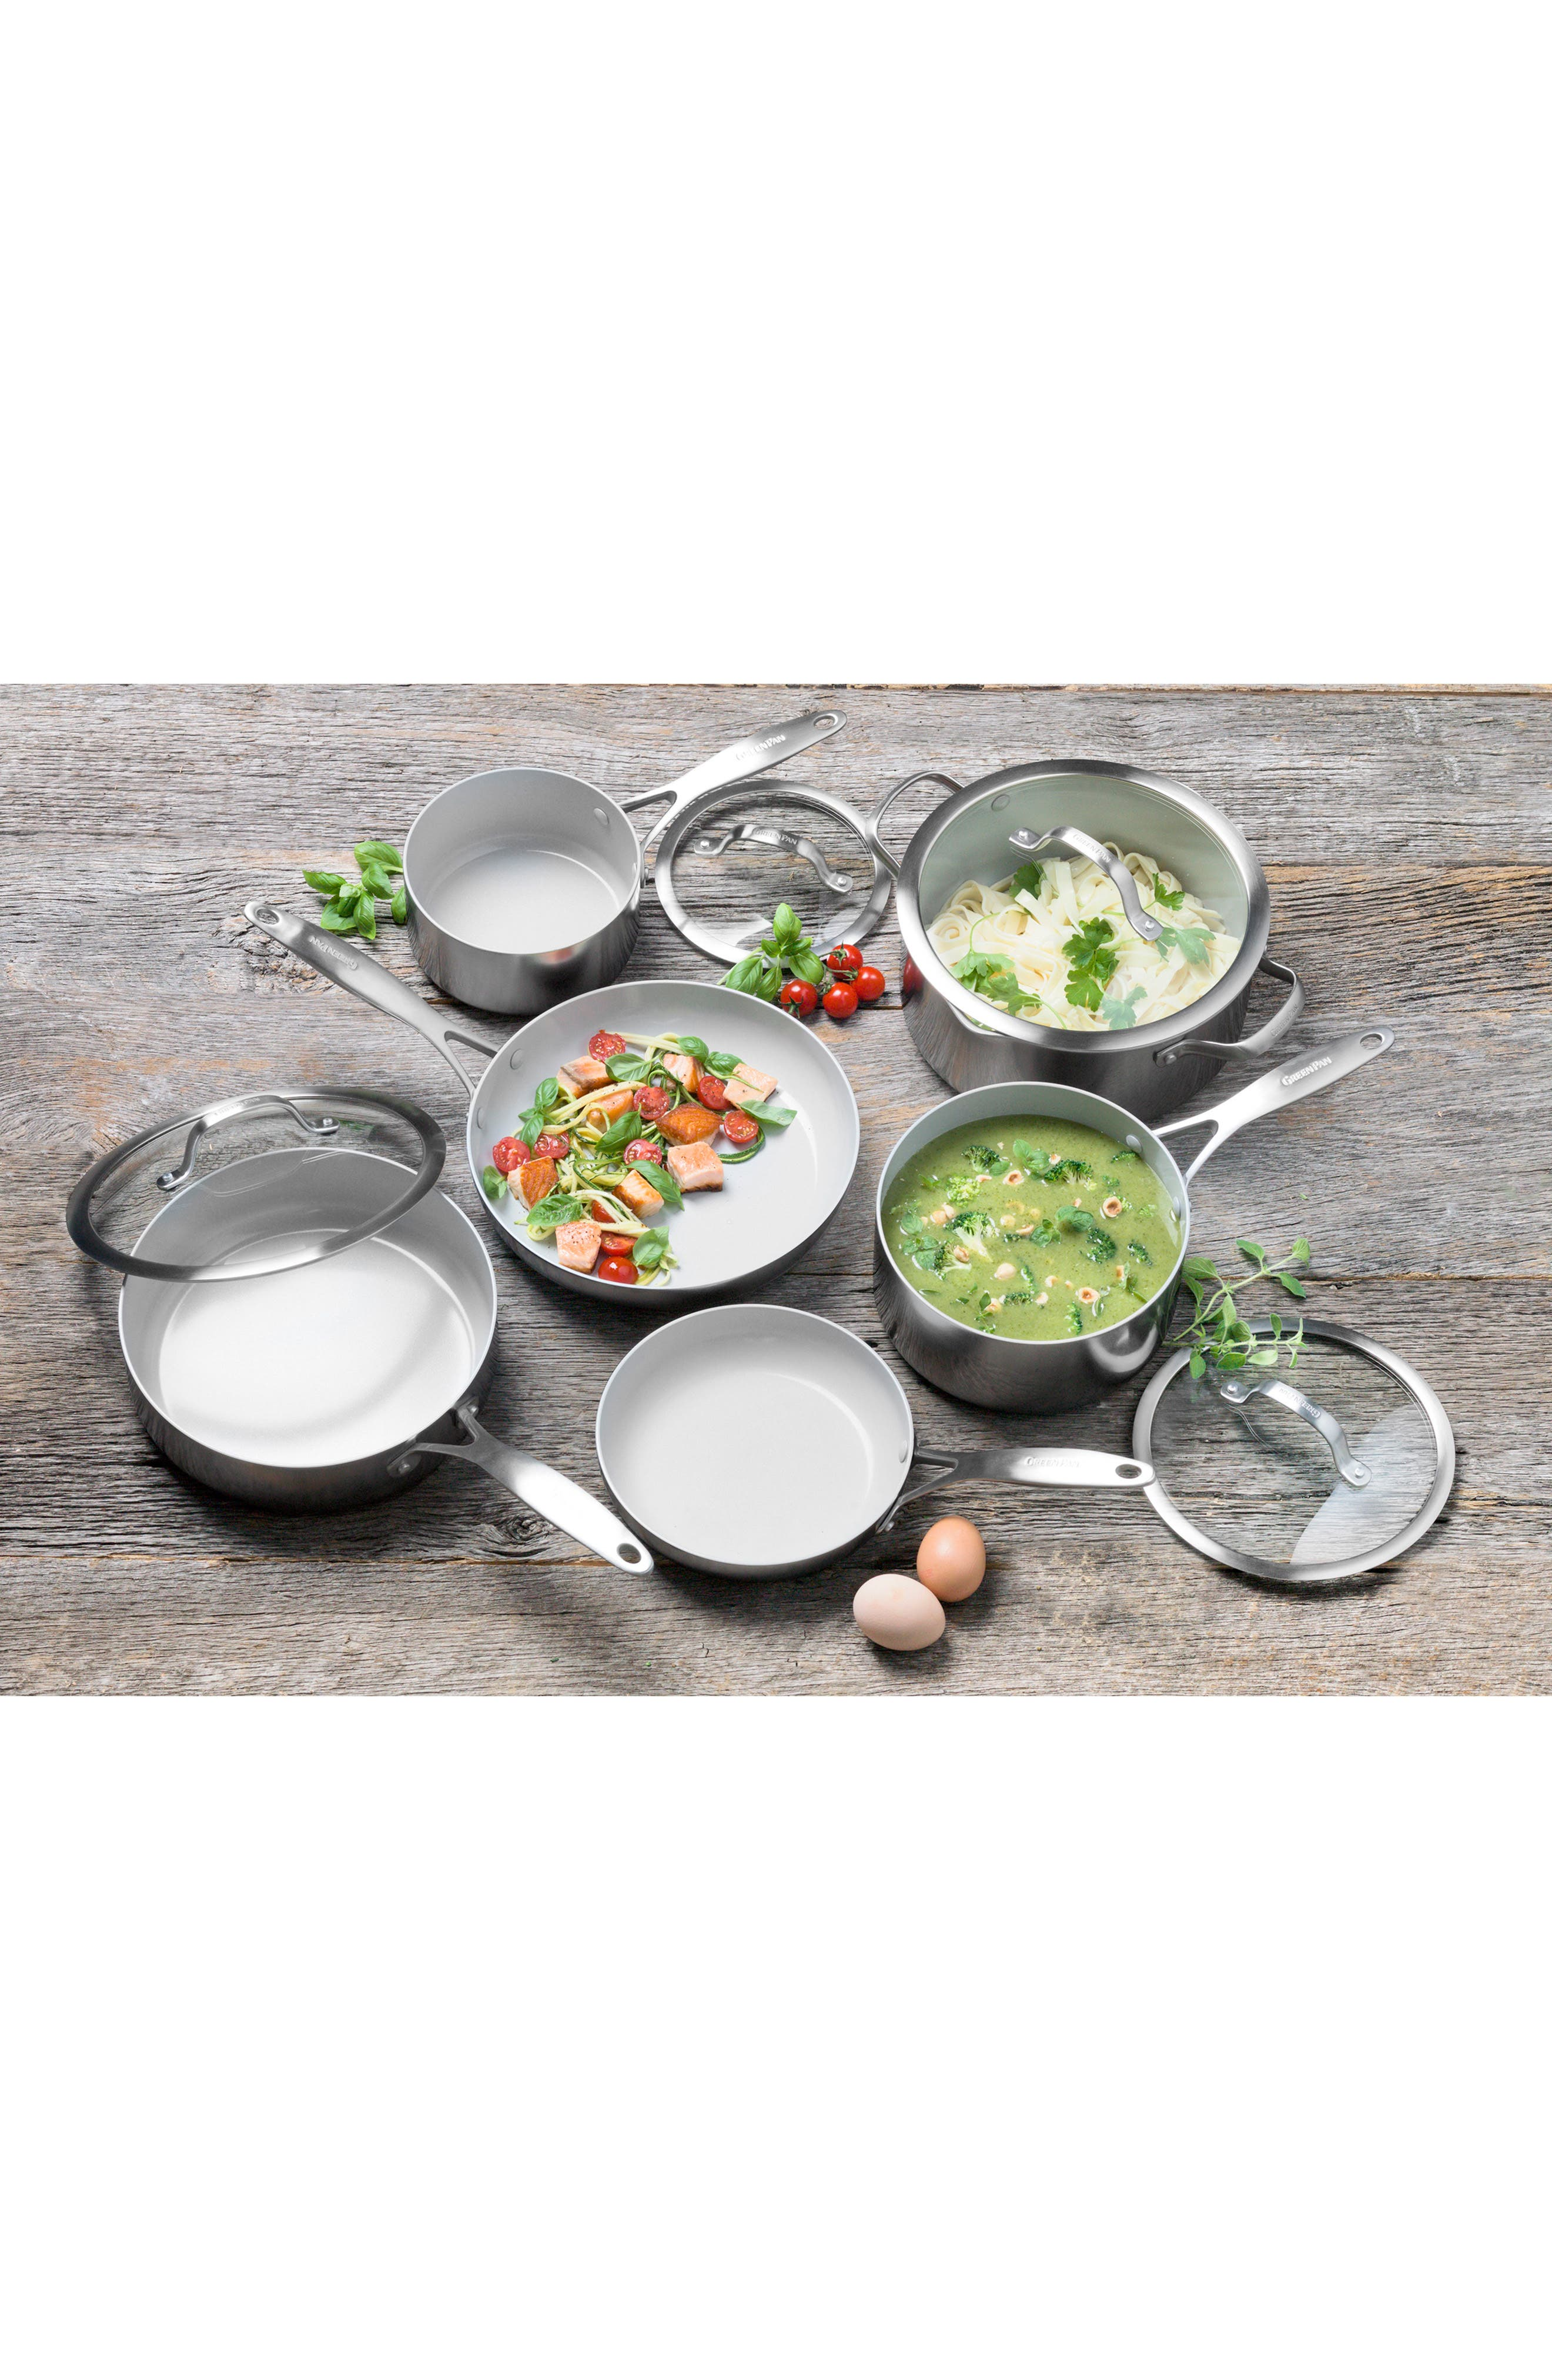 Venice Pro 10-Piece Multilayer Stainless Steel Ceramic Nonstick Cookware Set,                             Alternate thumbnail 5, color,                             STAINLESS STEEL